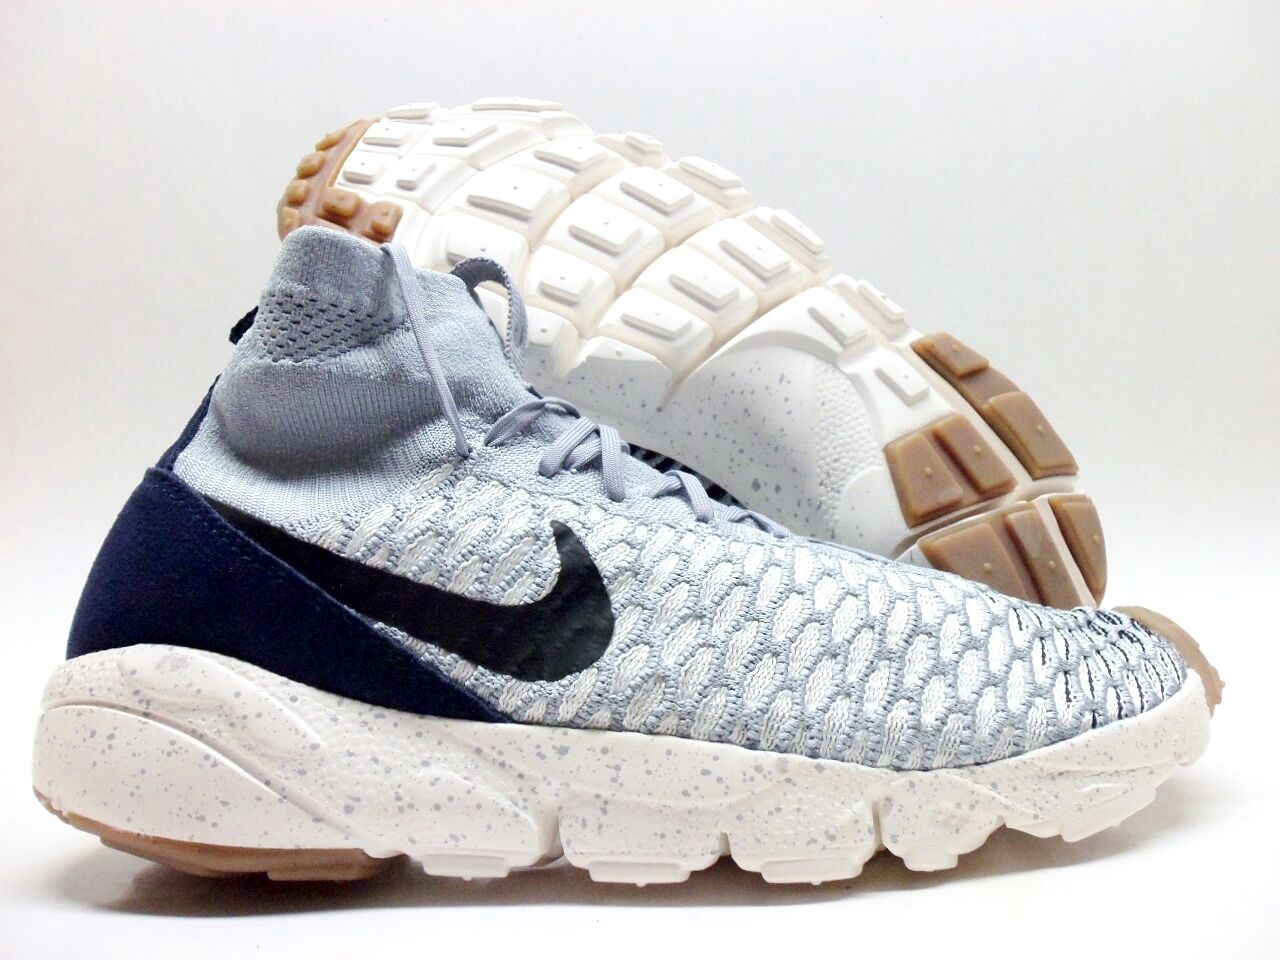 abdfb8abe146 high-quality NIKE AIR FOOTSCAPE MAGISTA FLYKNIT WOLF GREY B ACK SIZE MEN S